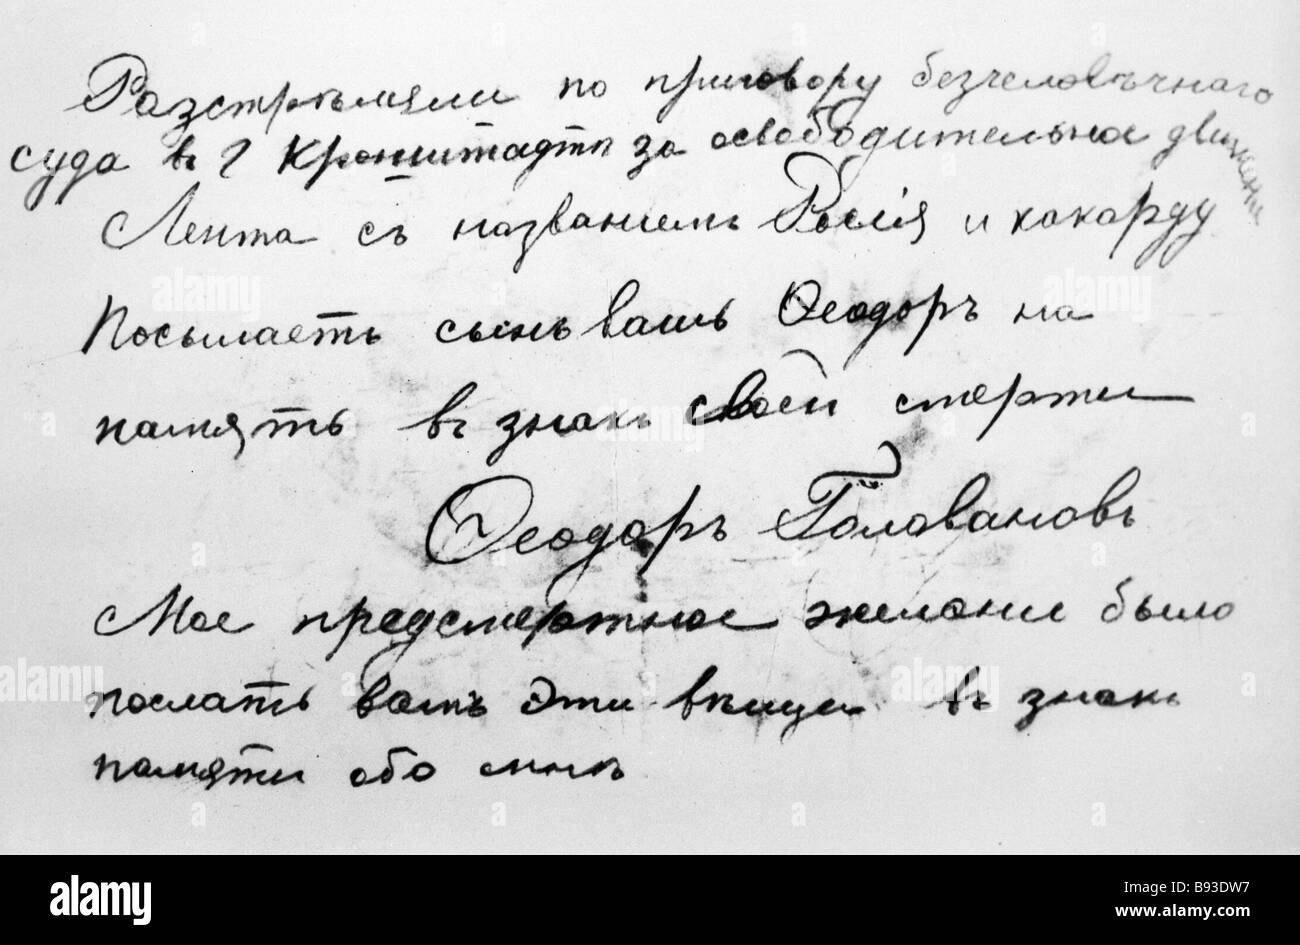 Farewell note stock photos farewell note stock images alamy a farewell letter from a participant of the kronstadt uprising he was executed in 1906 during altavistaventures Choice Image